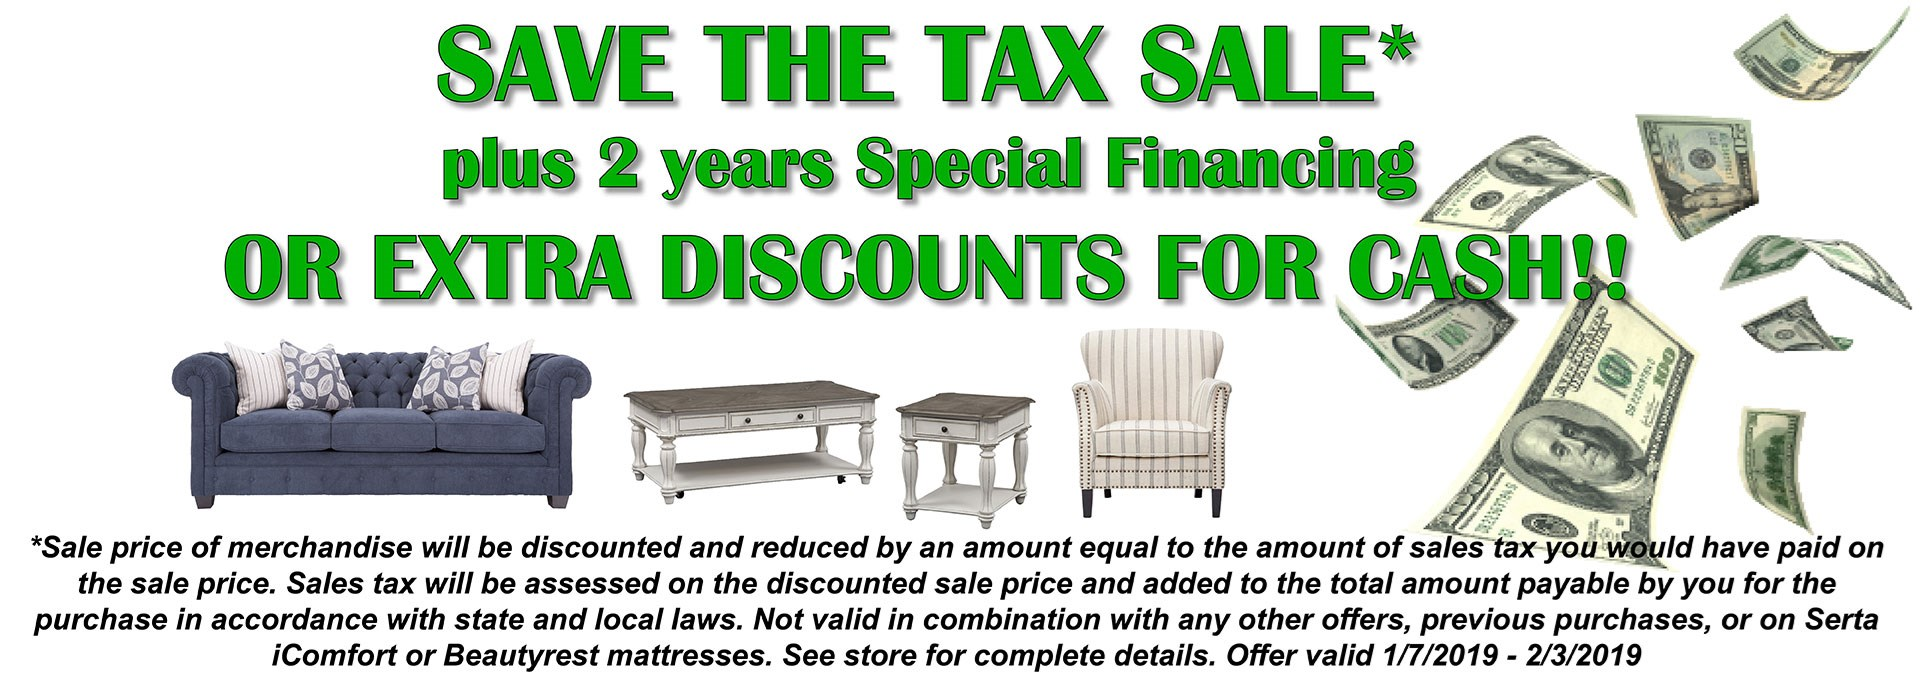 save the tax sale